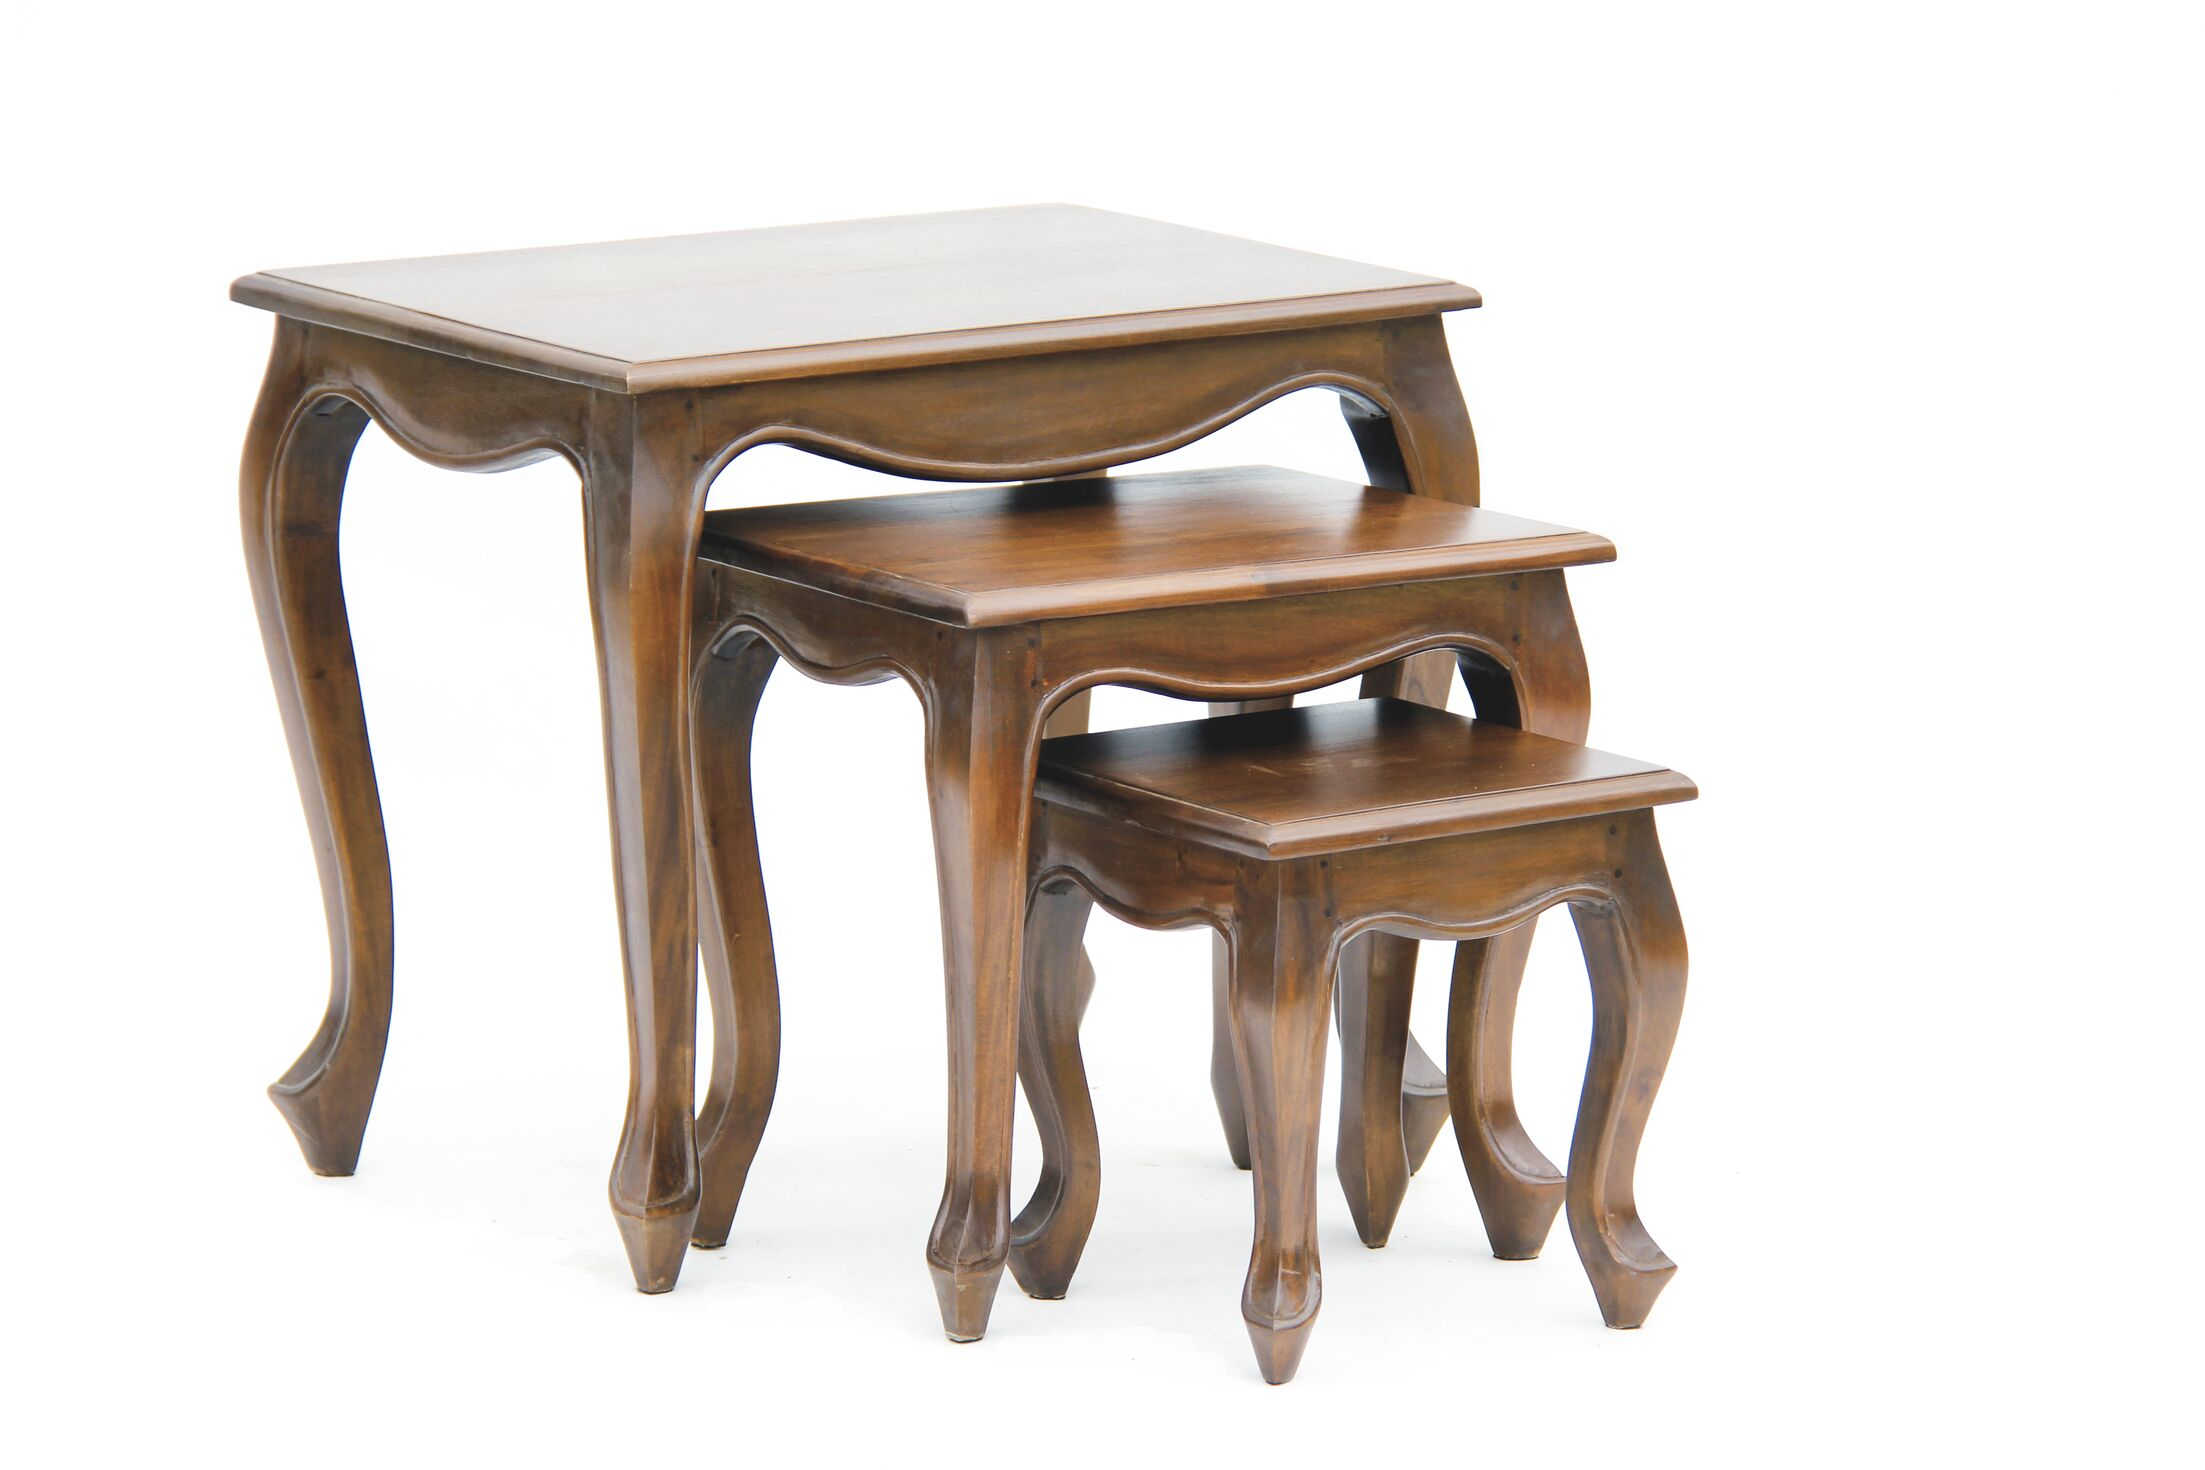 Wallsend Fine Handcrafted Solid Mahogany Wood End Table Color: Walnut